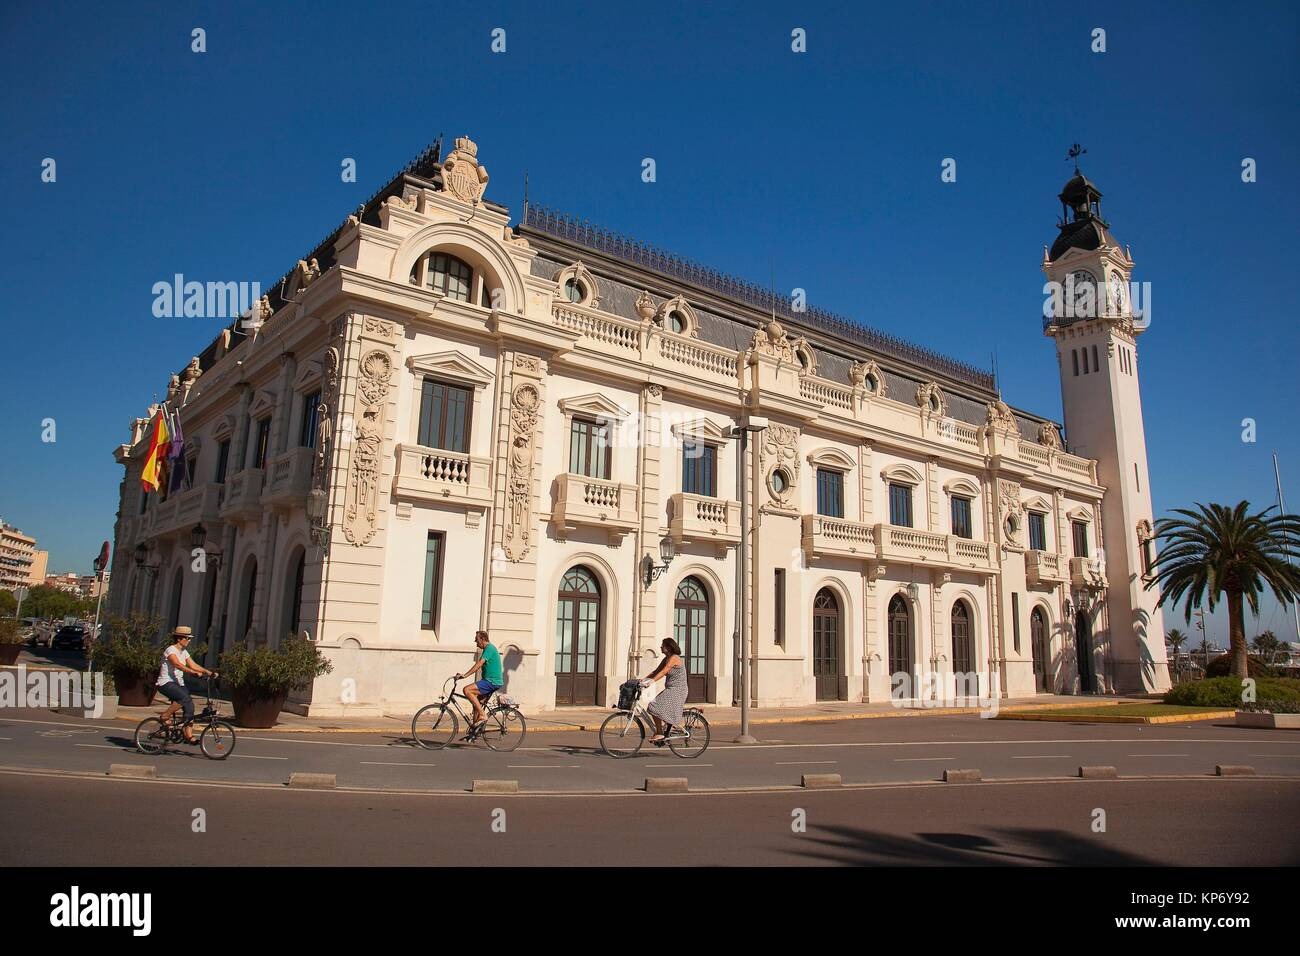 Cyclists in front of the Port Authority Building with its beautiful clock tower, Valencia, Spain, Europe - Stock Image